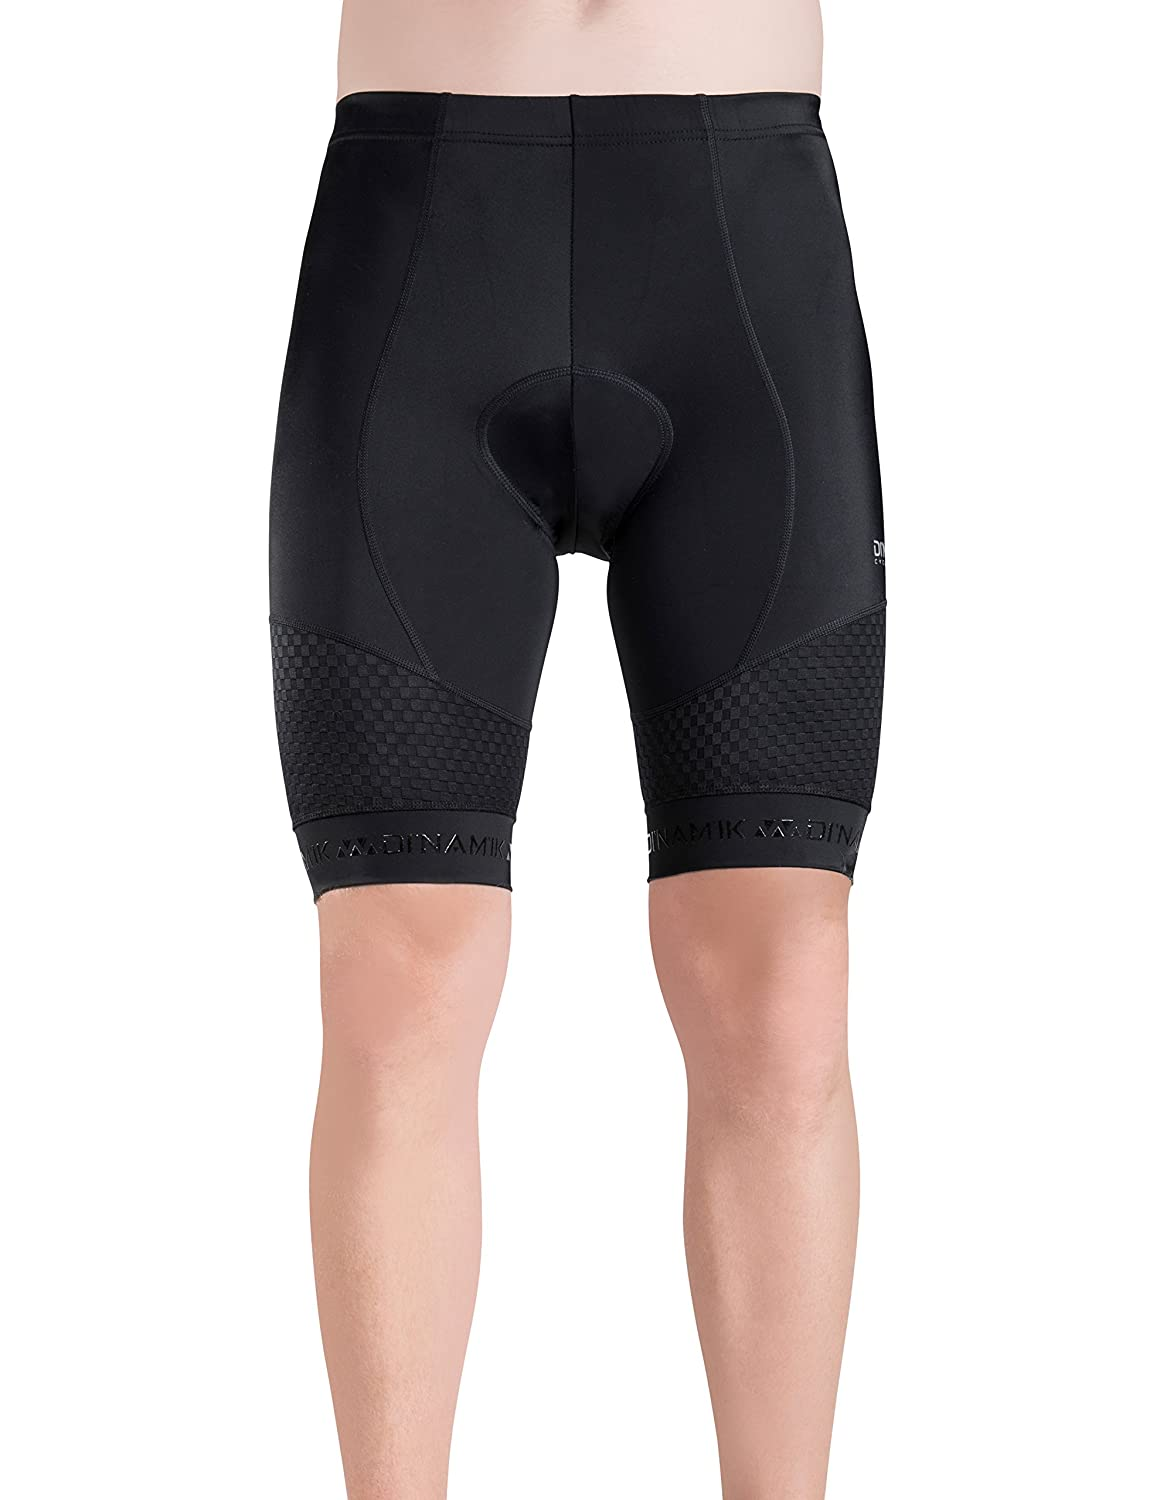 2019 year lifestyle- How to padded wear bike shorts